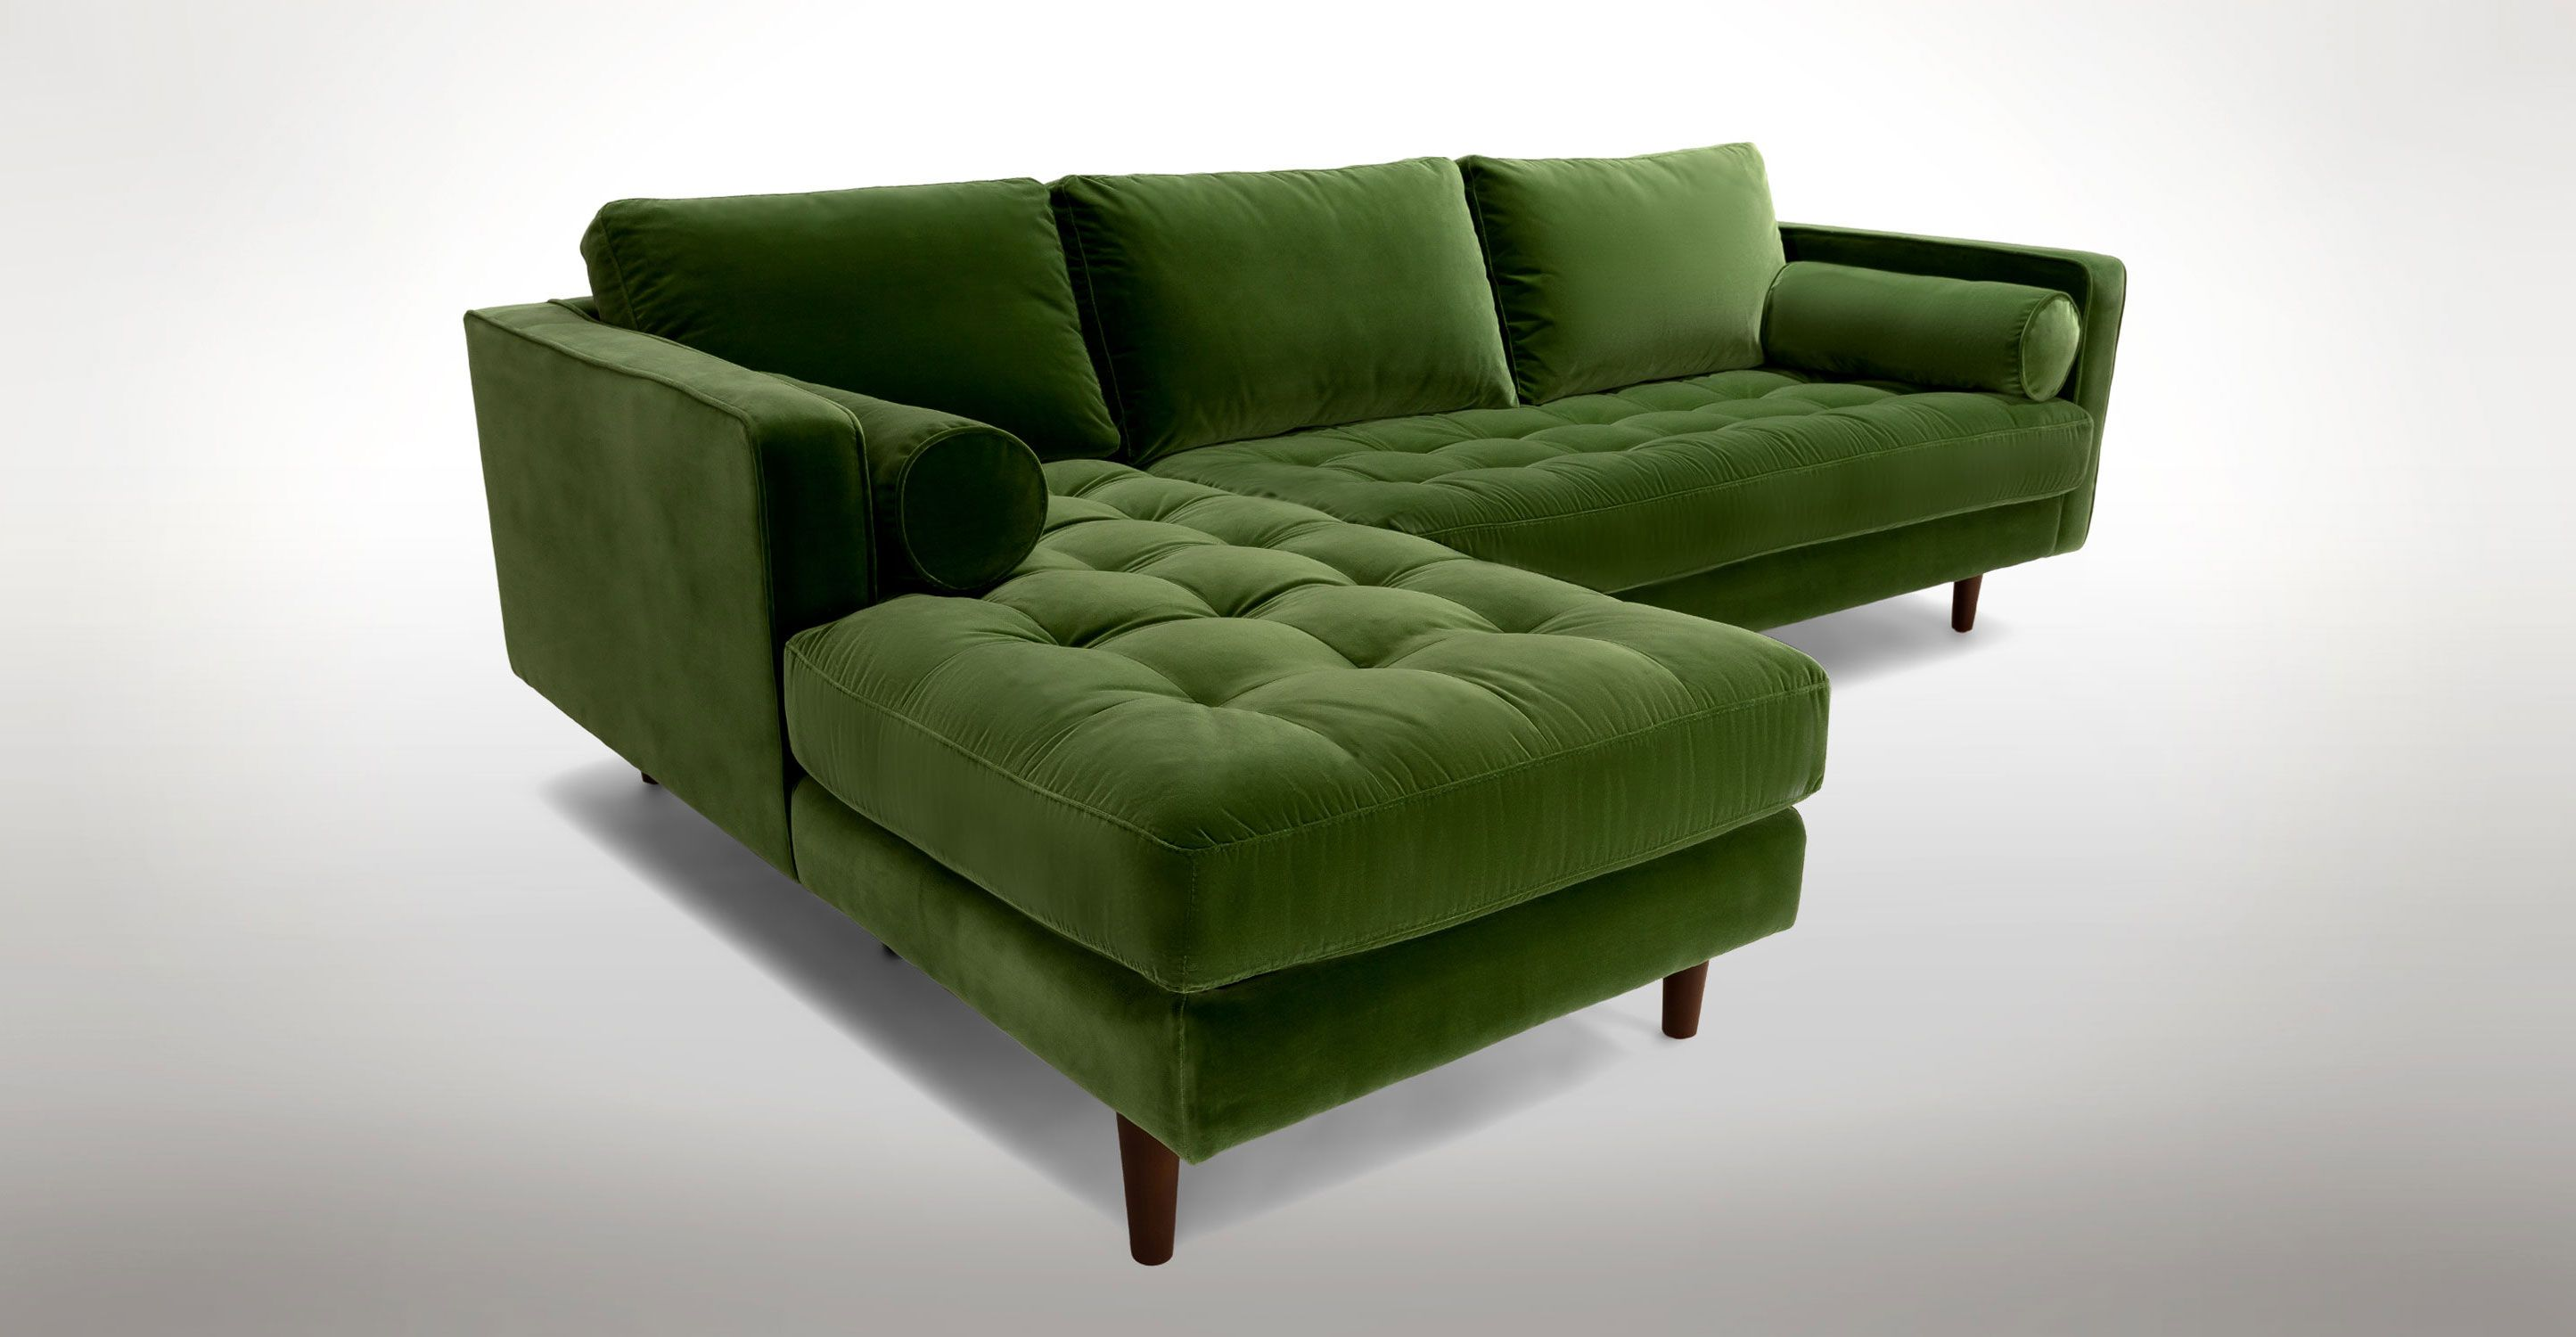 barrel olive hero velvet tufted piece hei and aidan sofa web reviews sectional arm green crate wid furn right corner zoom